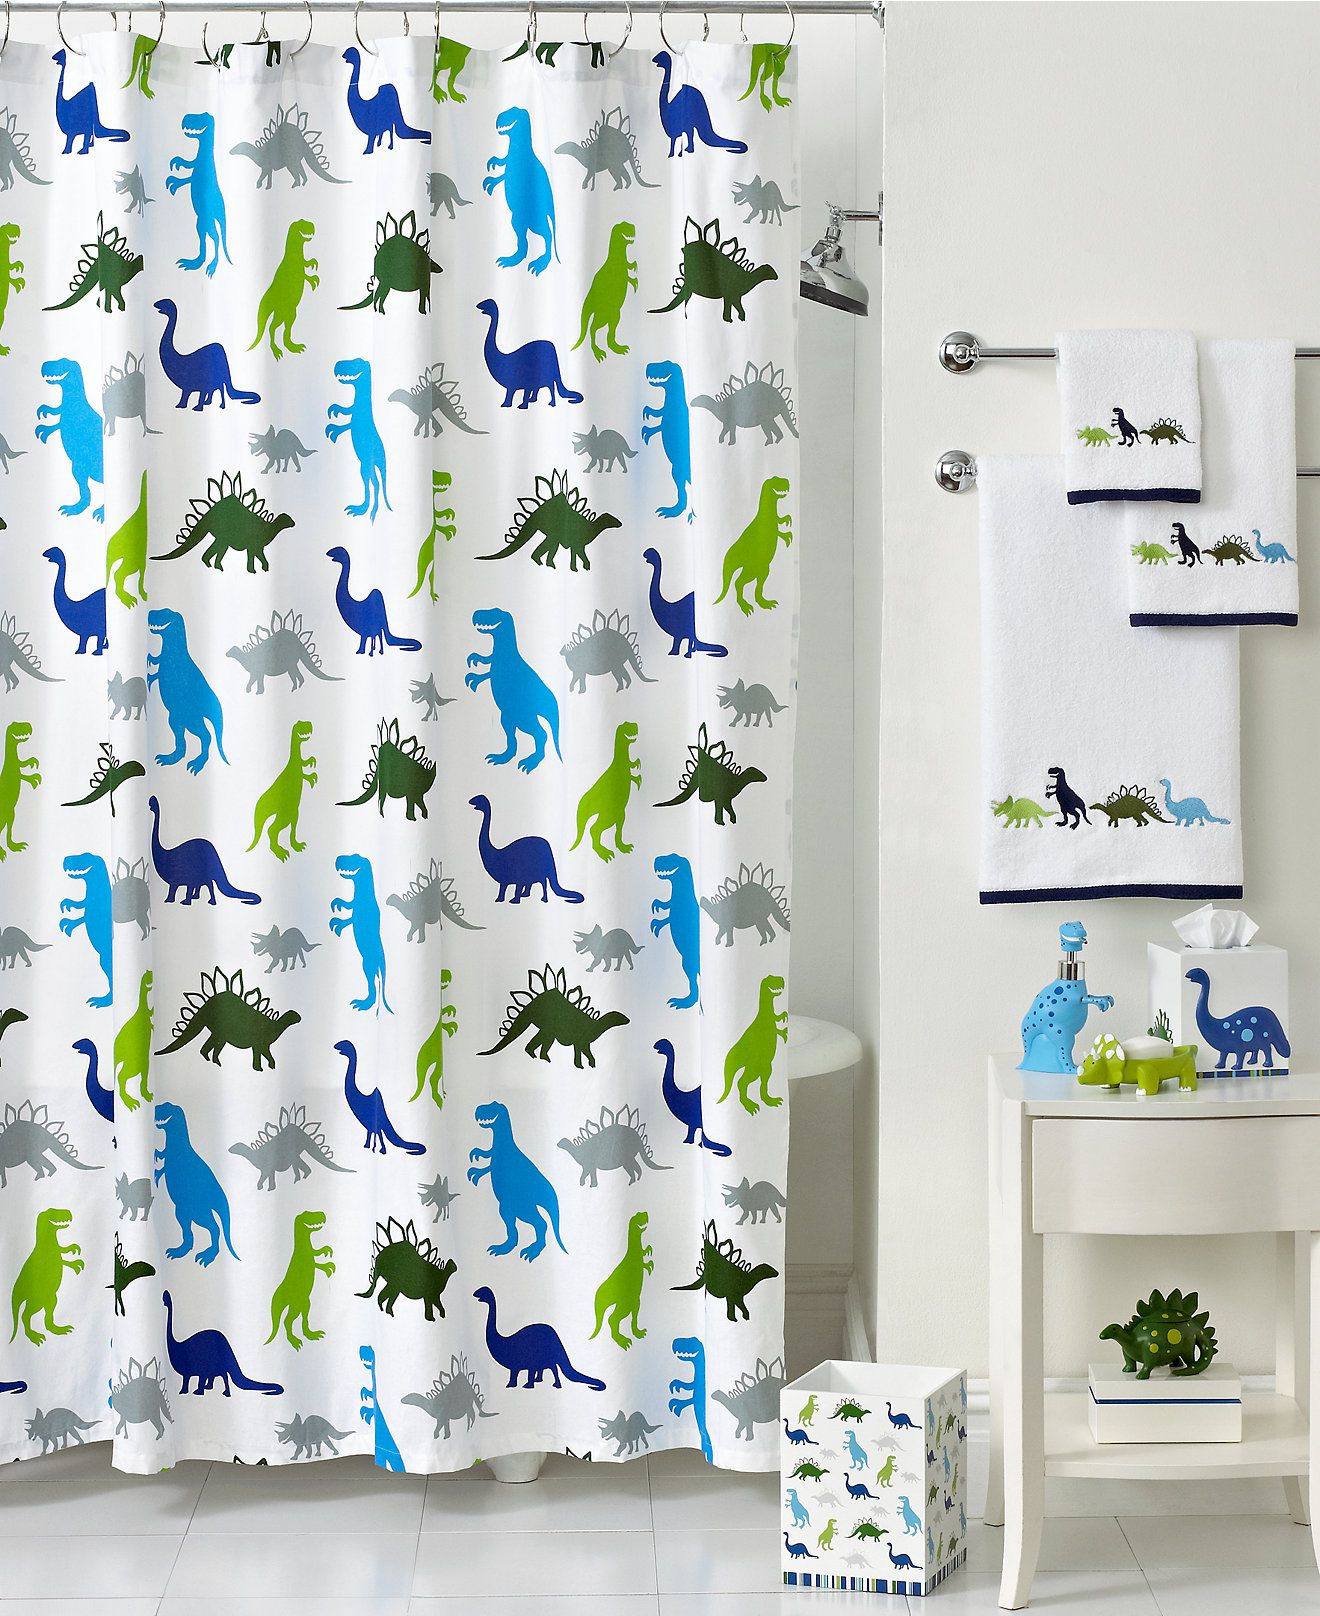 Kids Bathroom Sets For Kid friendly Design